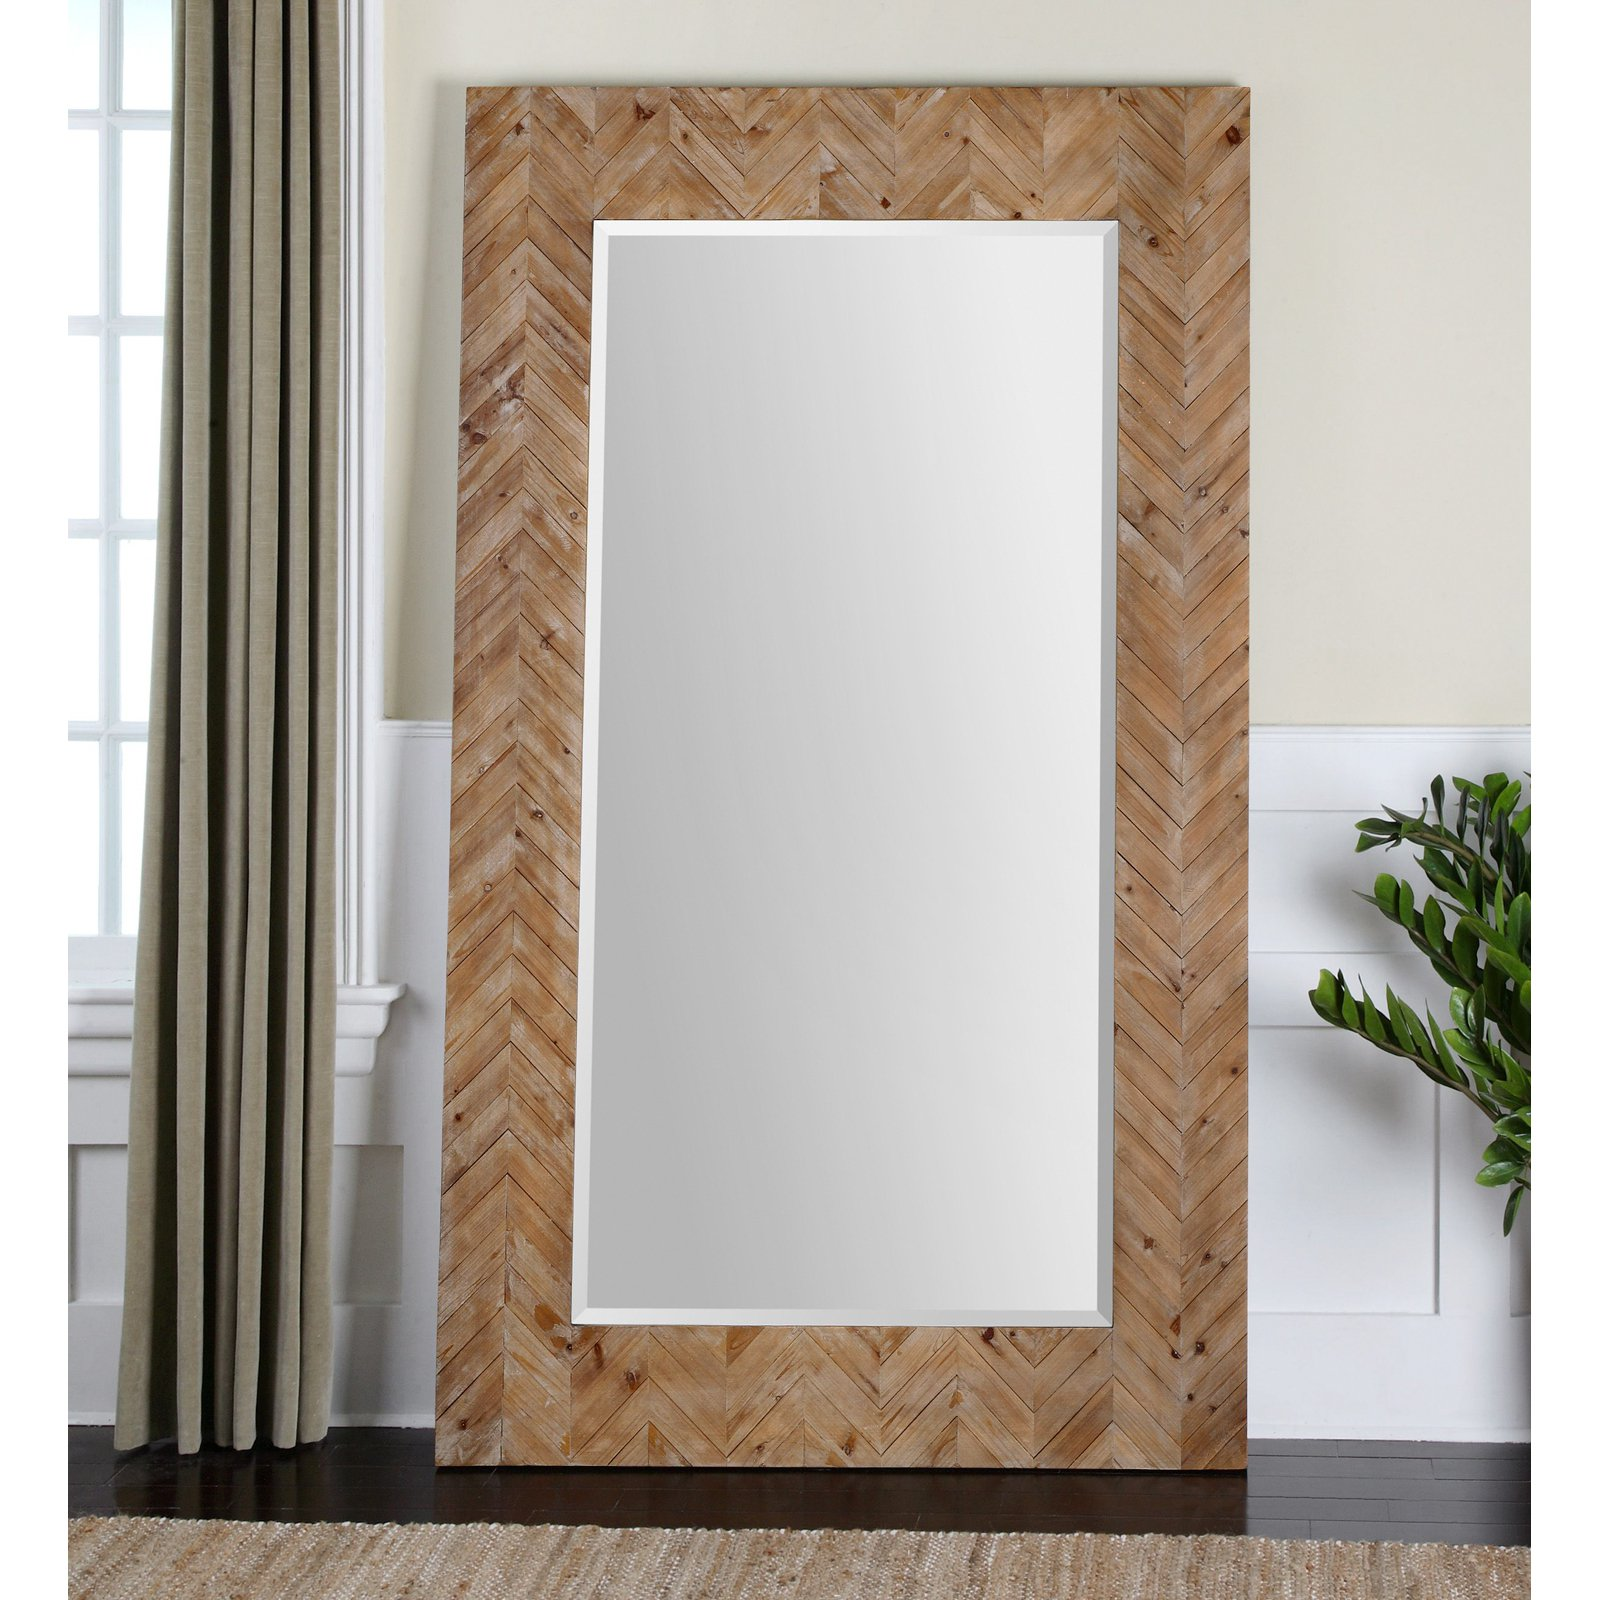 Homegoods Mirrors | Rustic Mirrors | Oversized Mirrors